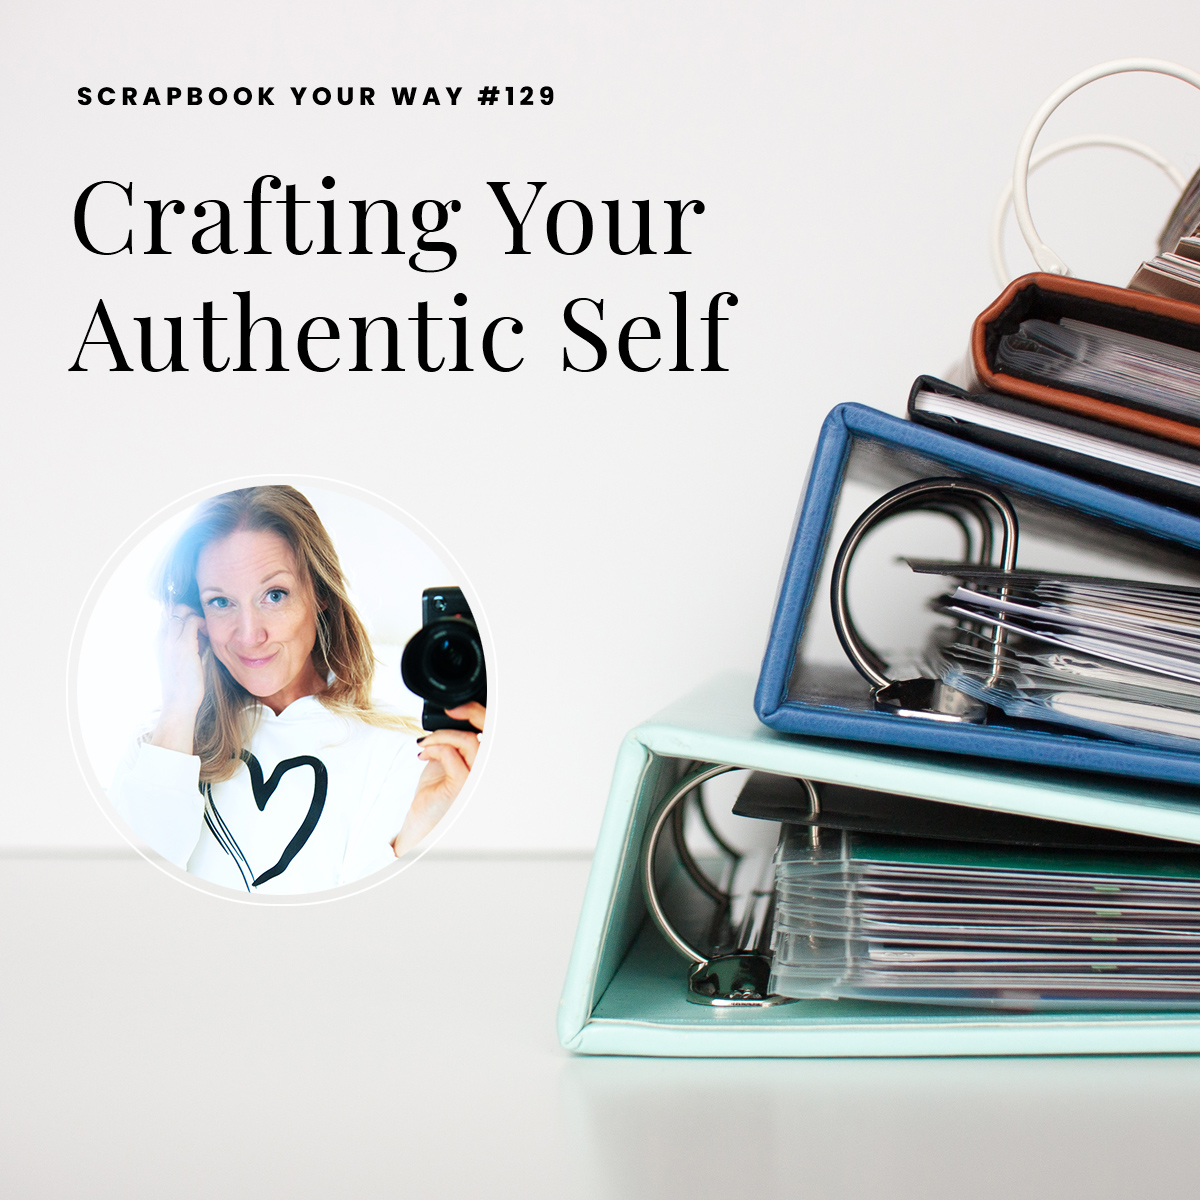 SYW129 - Crafting Your Authentic Self